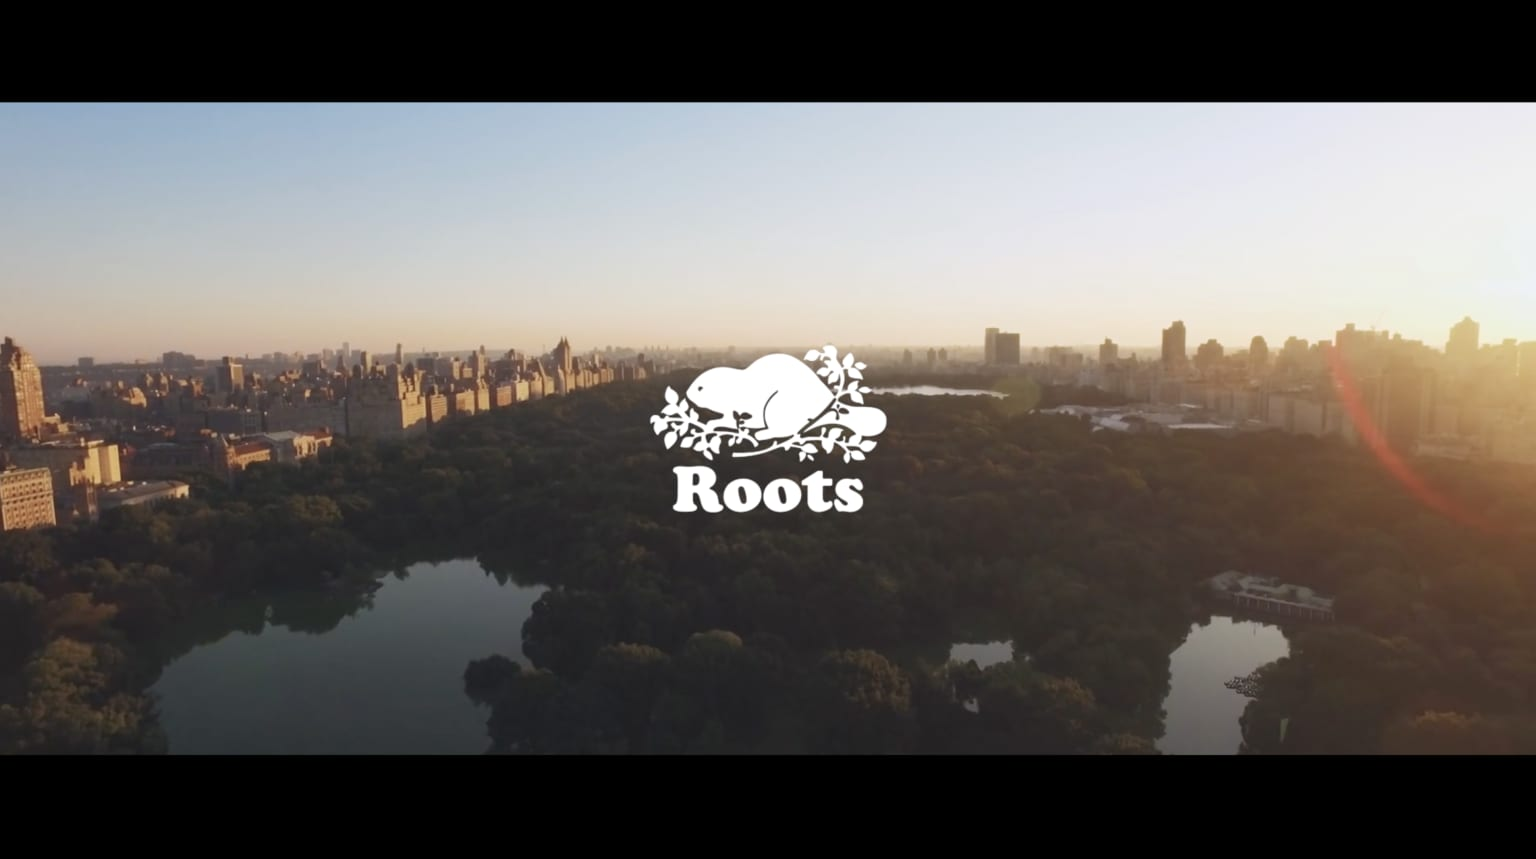 Roots - Sizzle